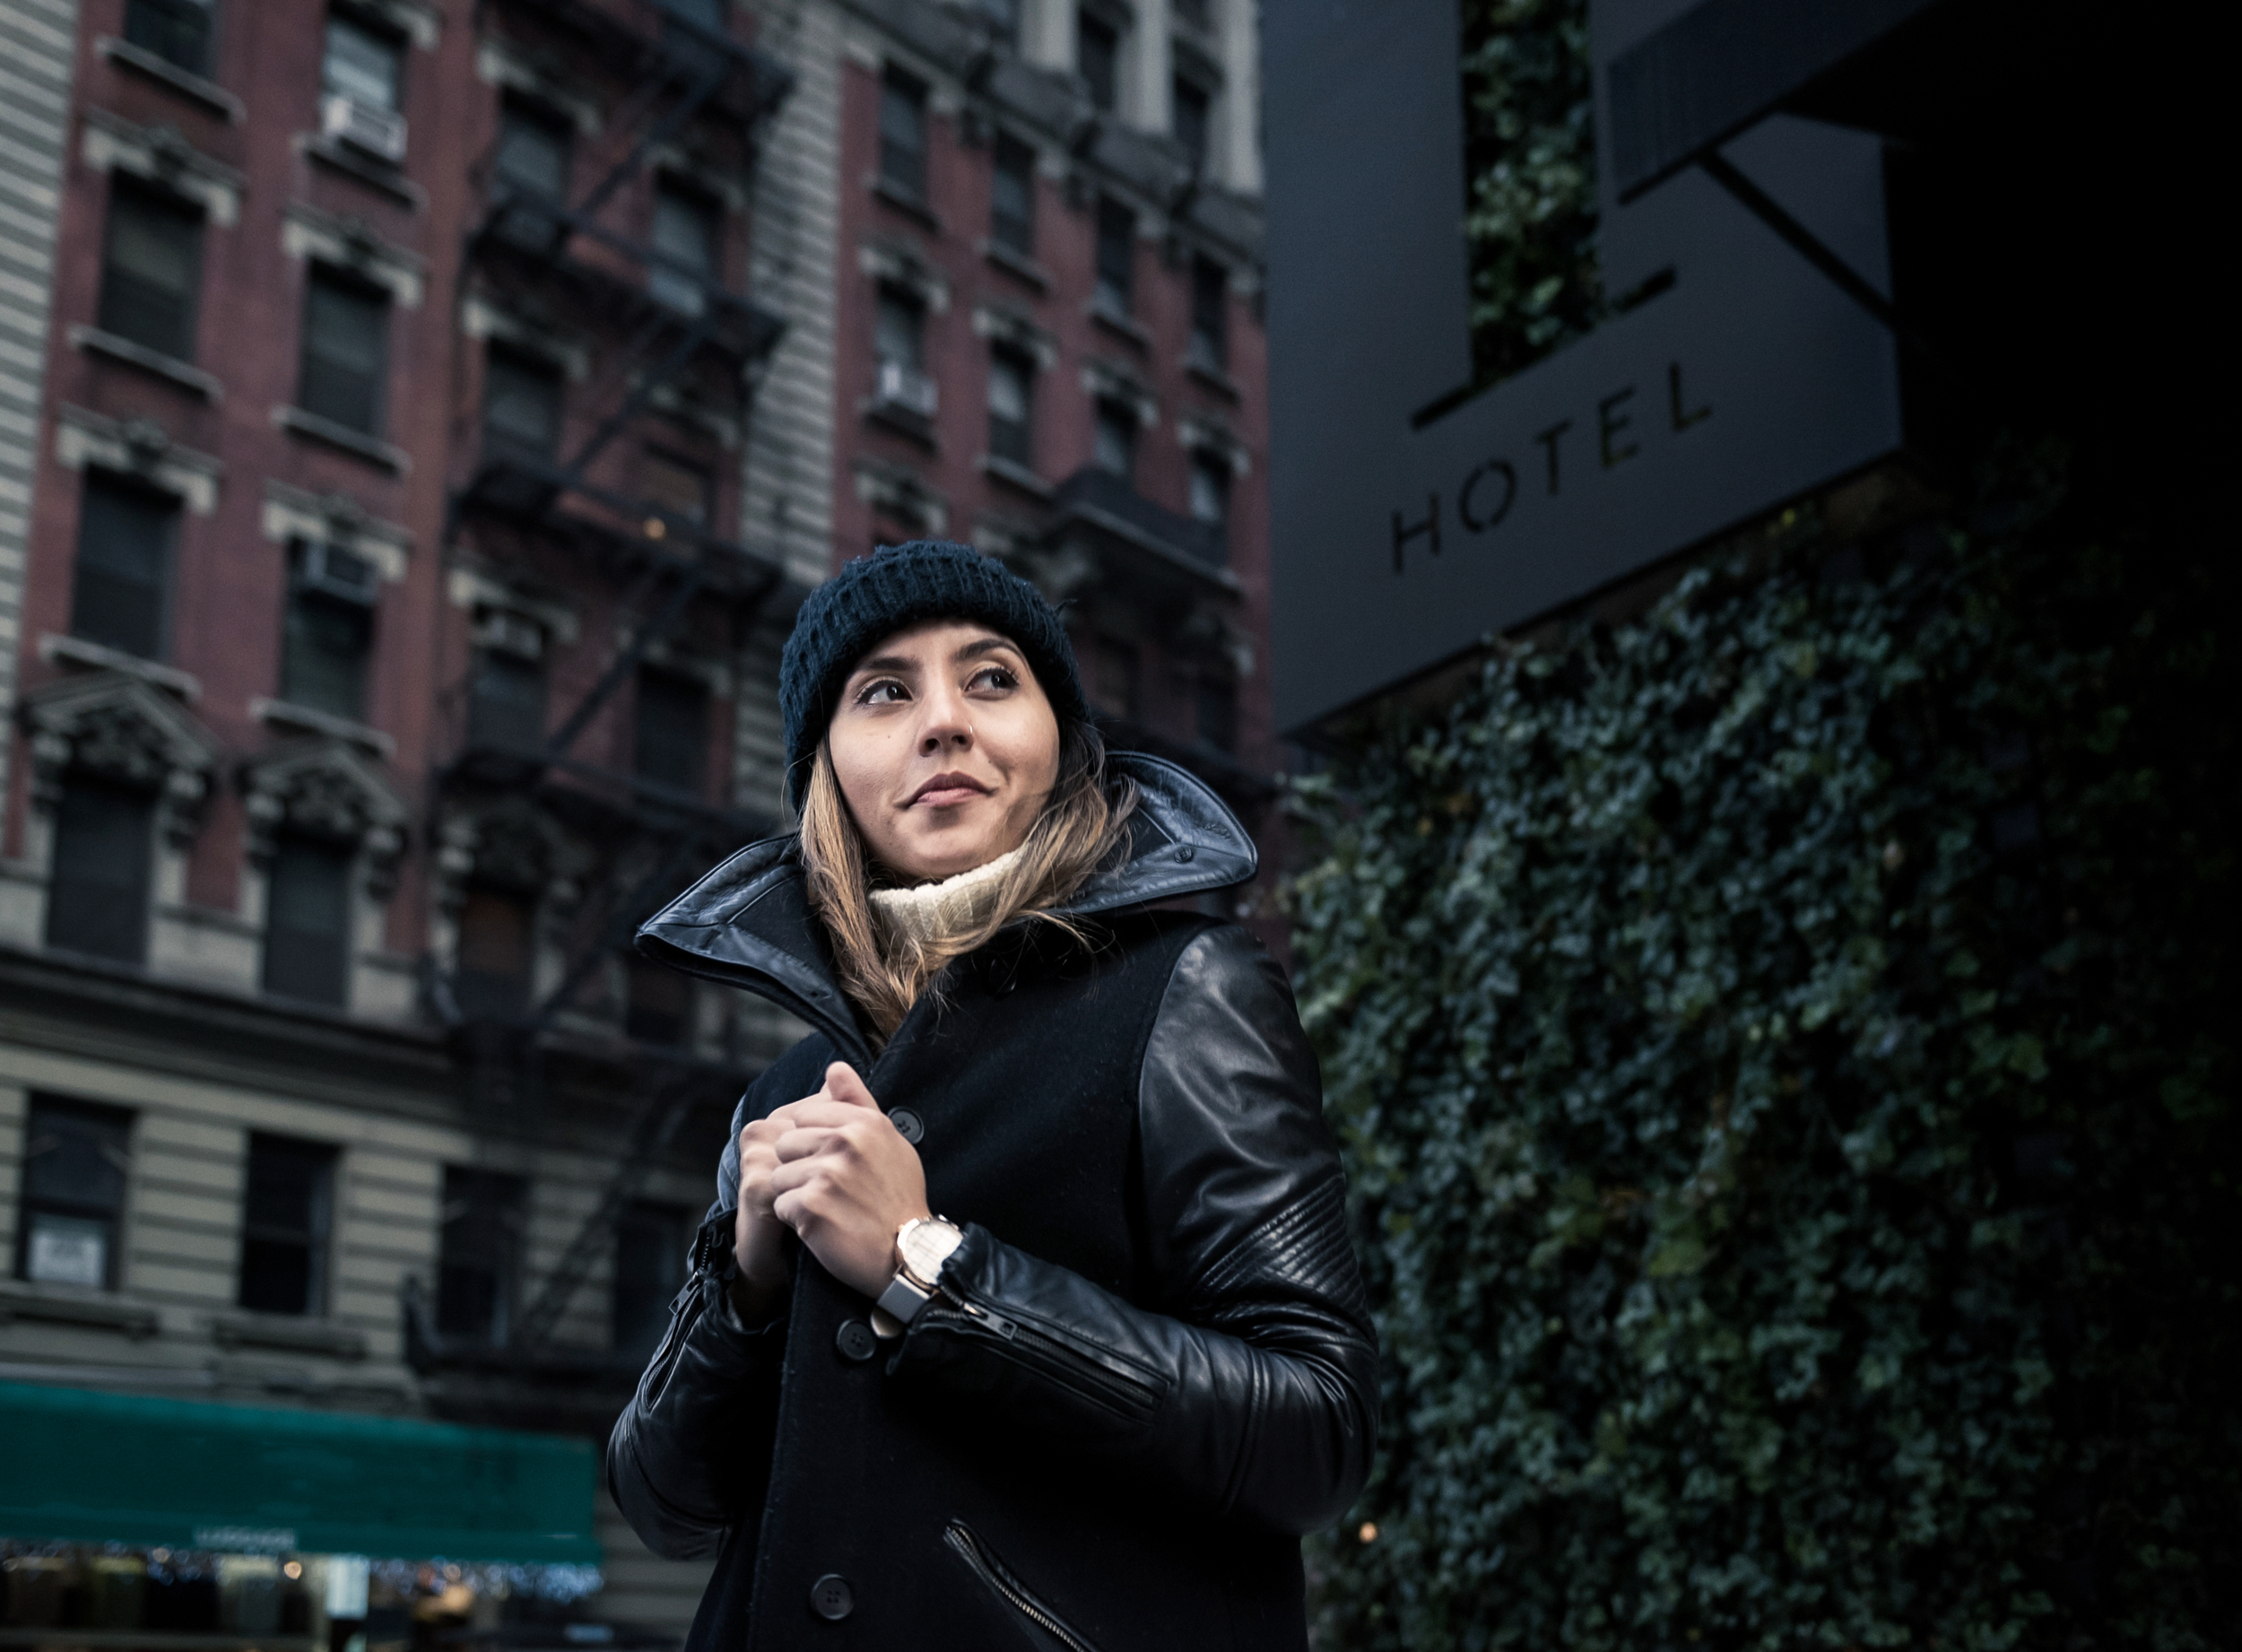 1hotel-central-park-raquel-paiva-fashion-blogger-staycation